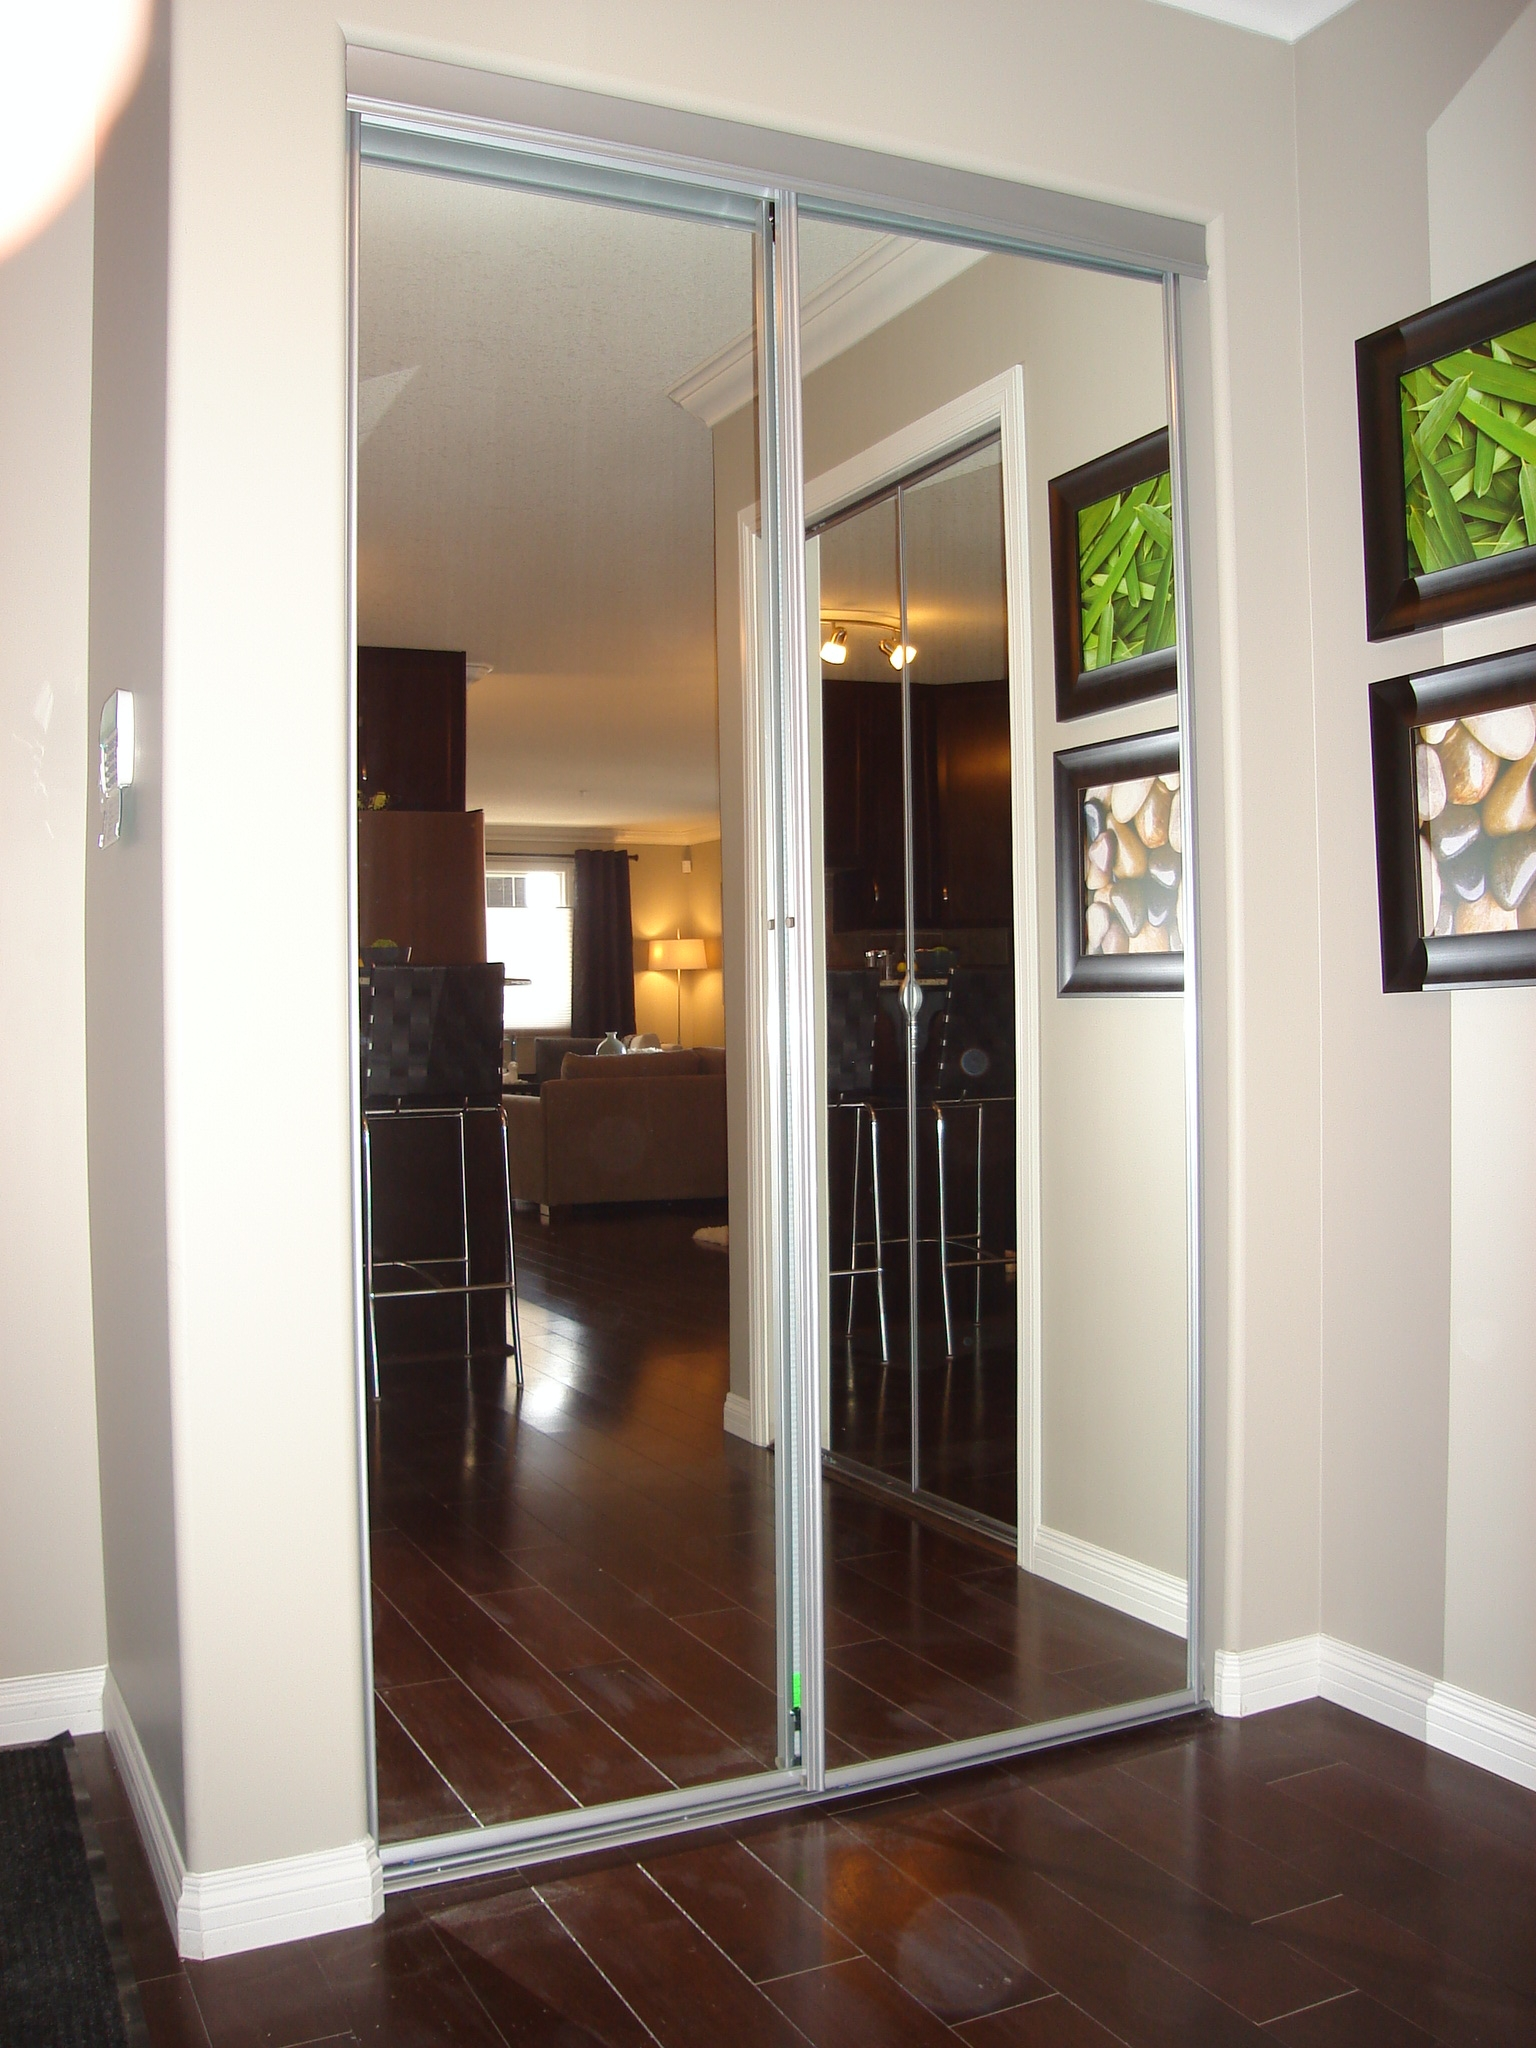 8ft Mirror Closet Doors